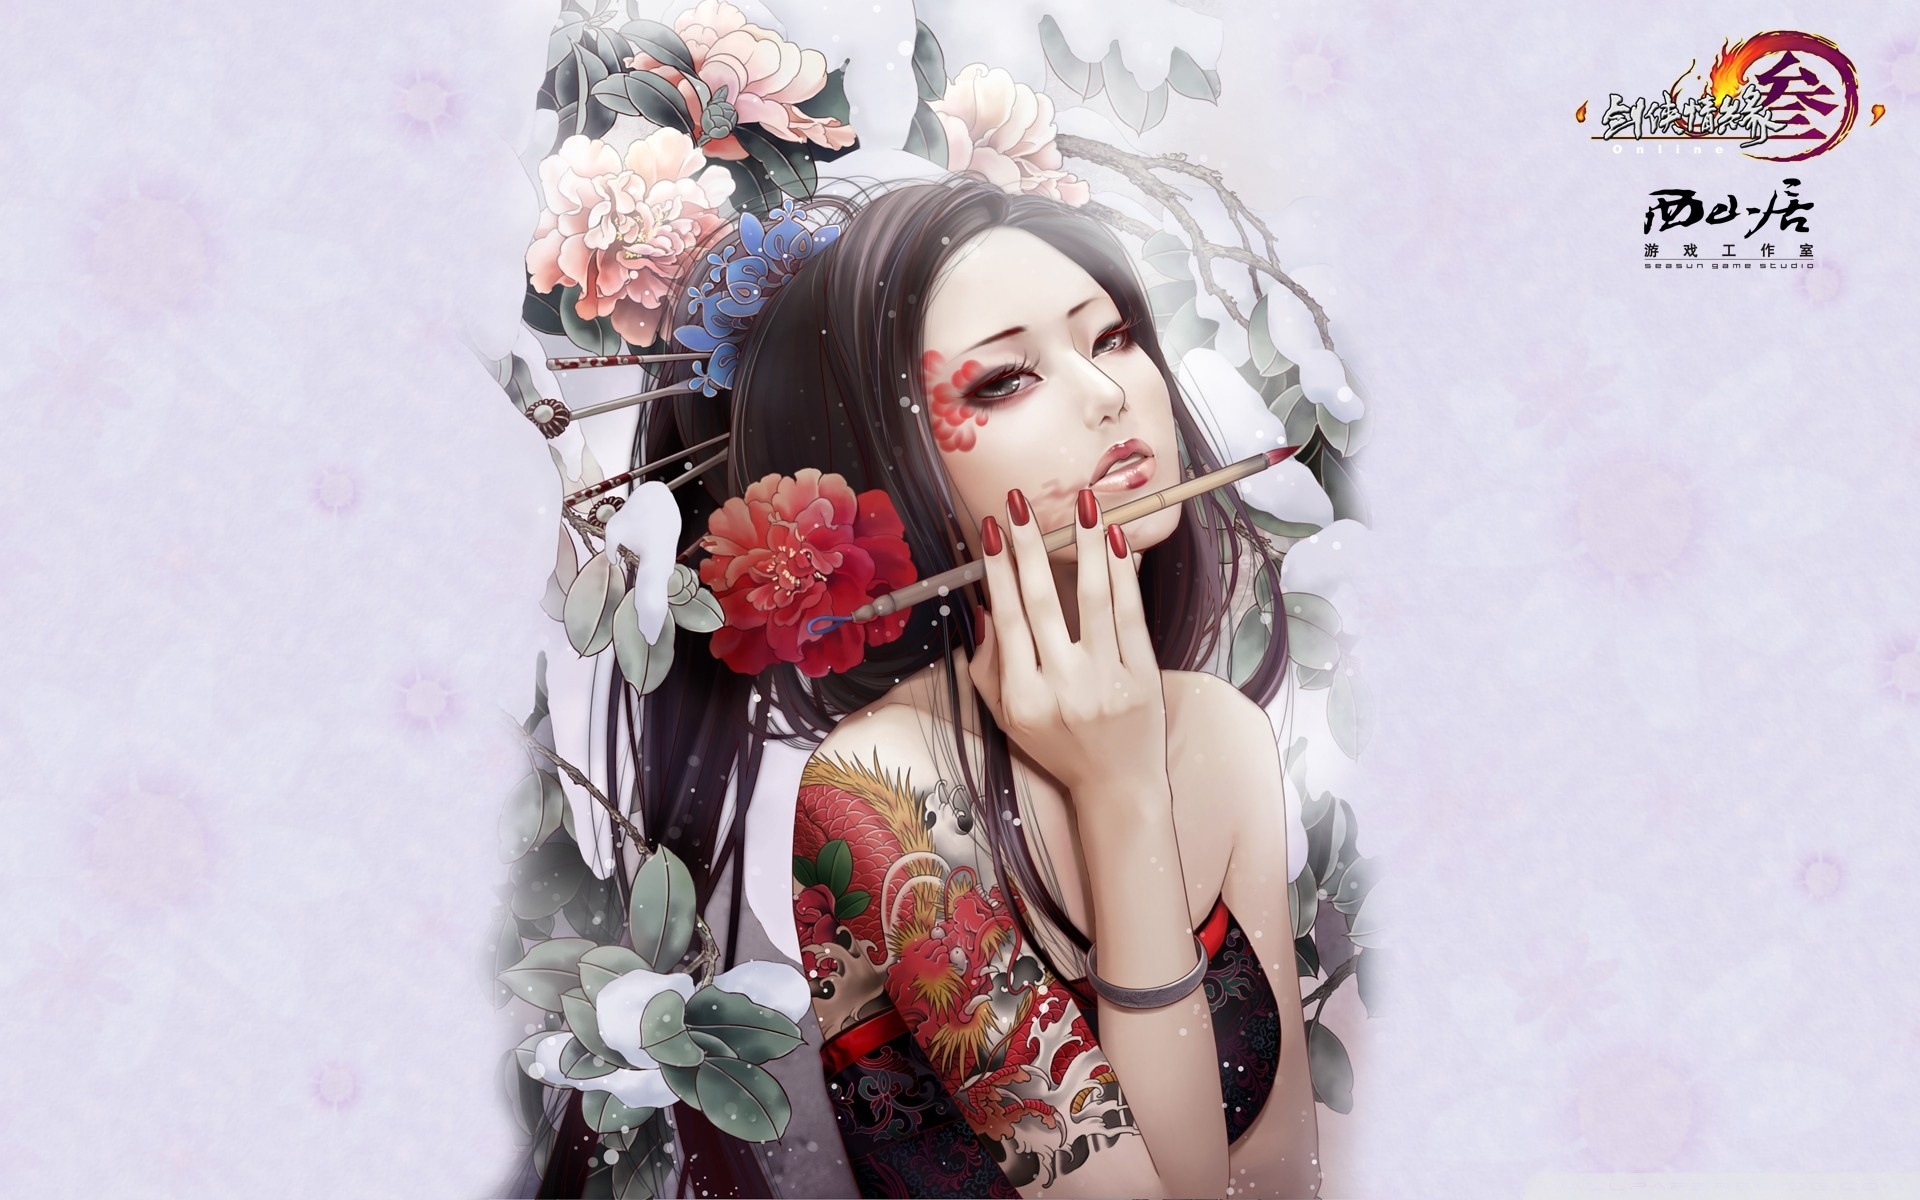 Tattoo Wallpapers part 2 - Tattoo Wallpapers